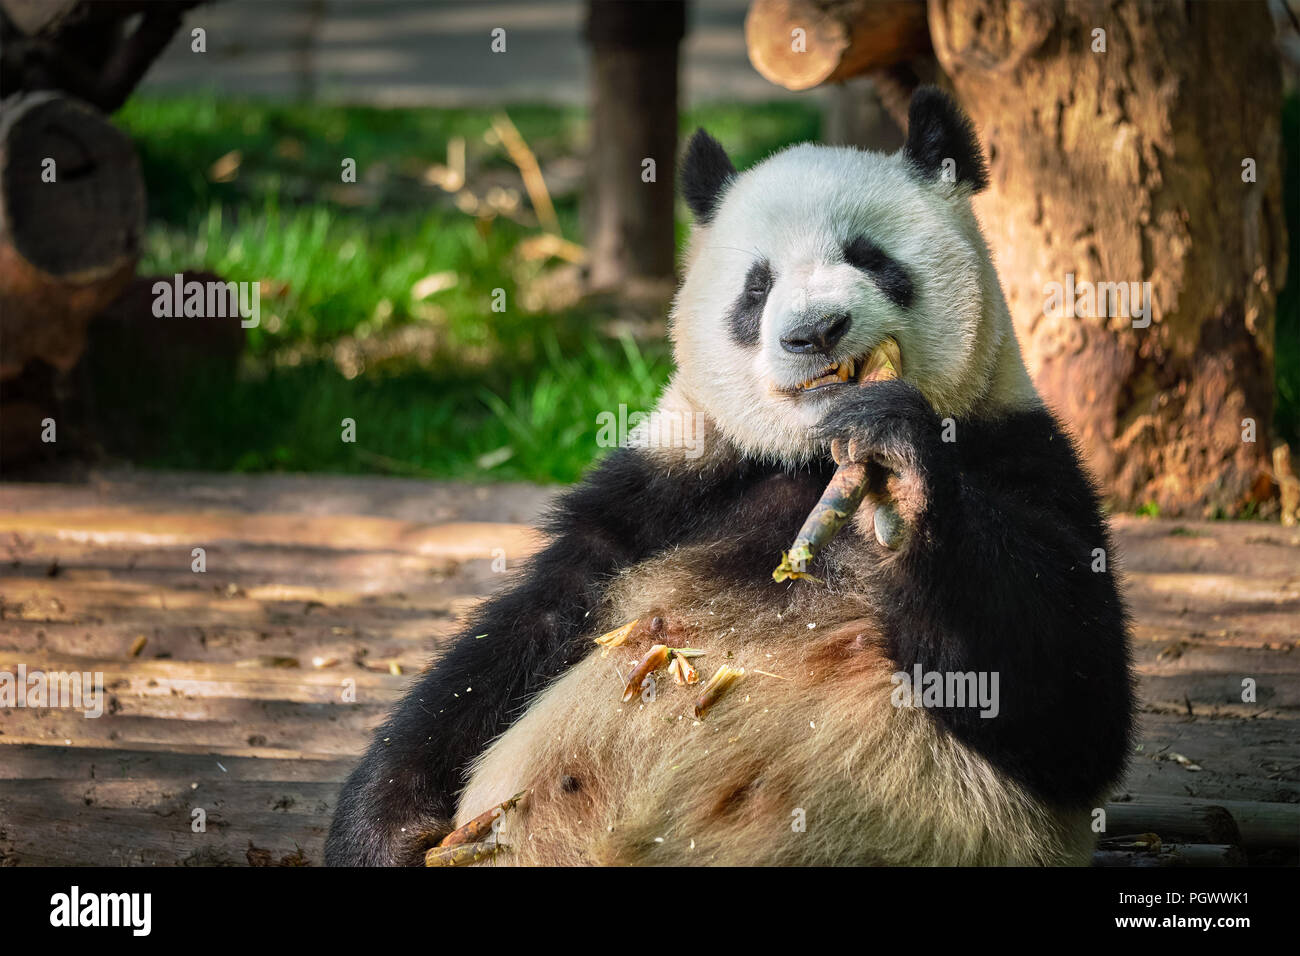 Panda Bären in China Stockbild